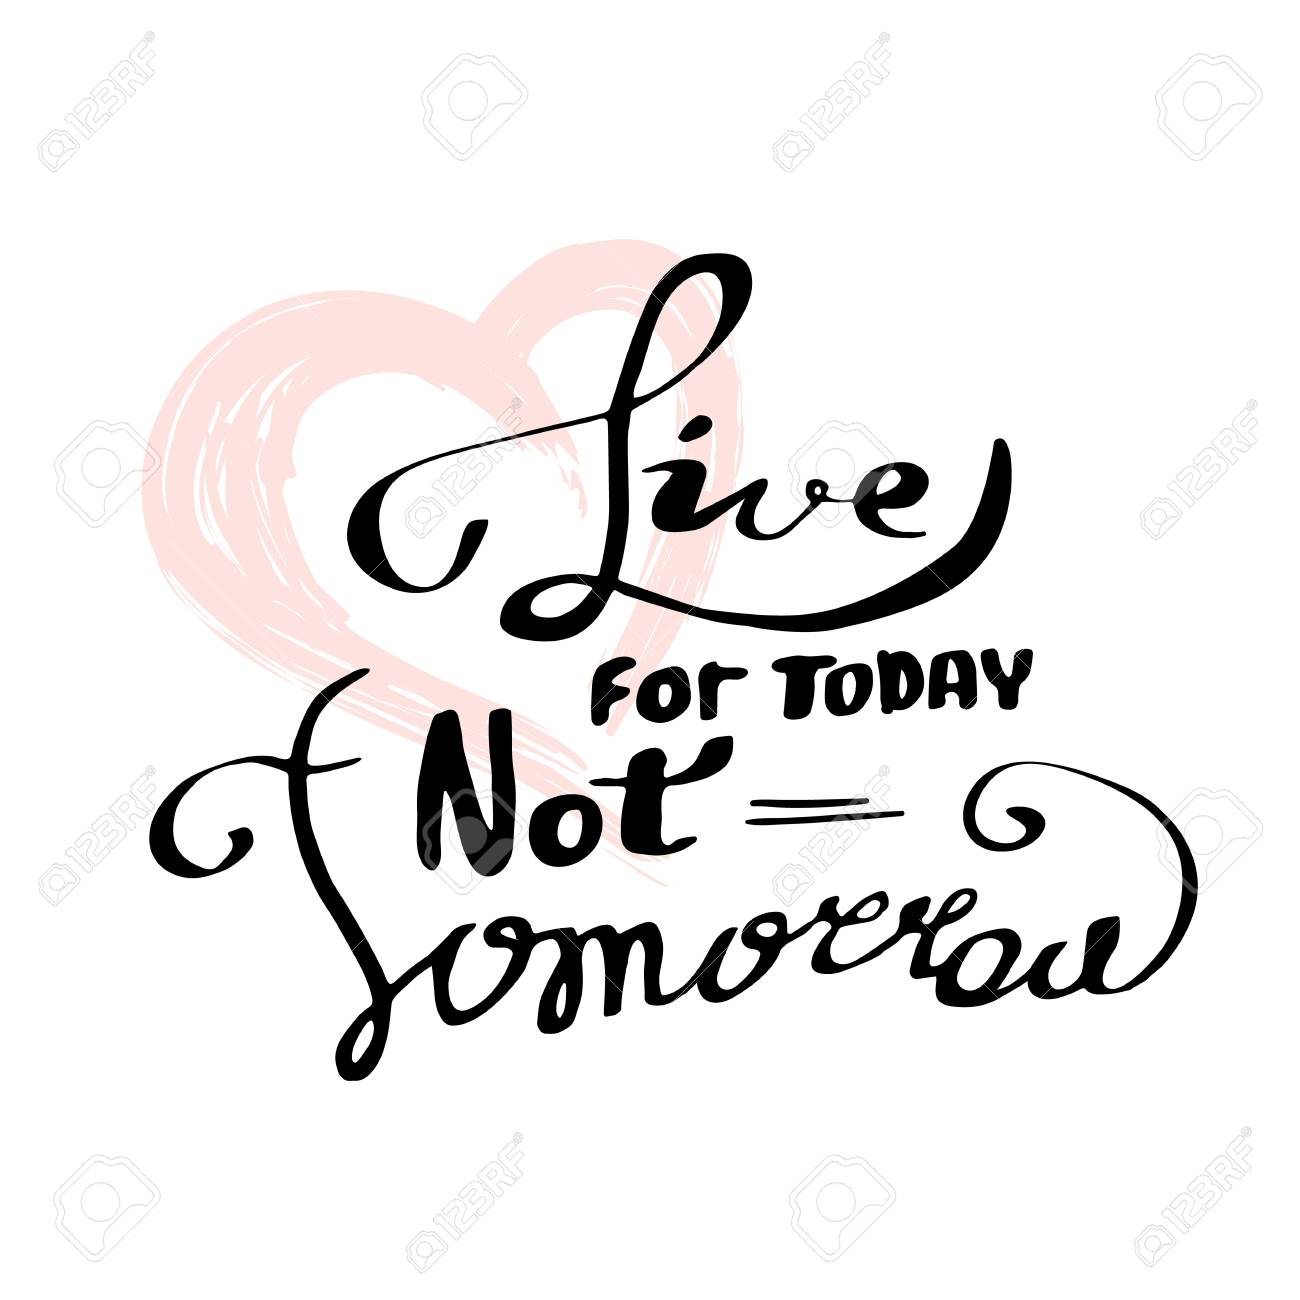 Live For Today Quotes Pleasing Live For Today Not Tomorrow Inspirational Quote Motivation